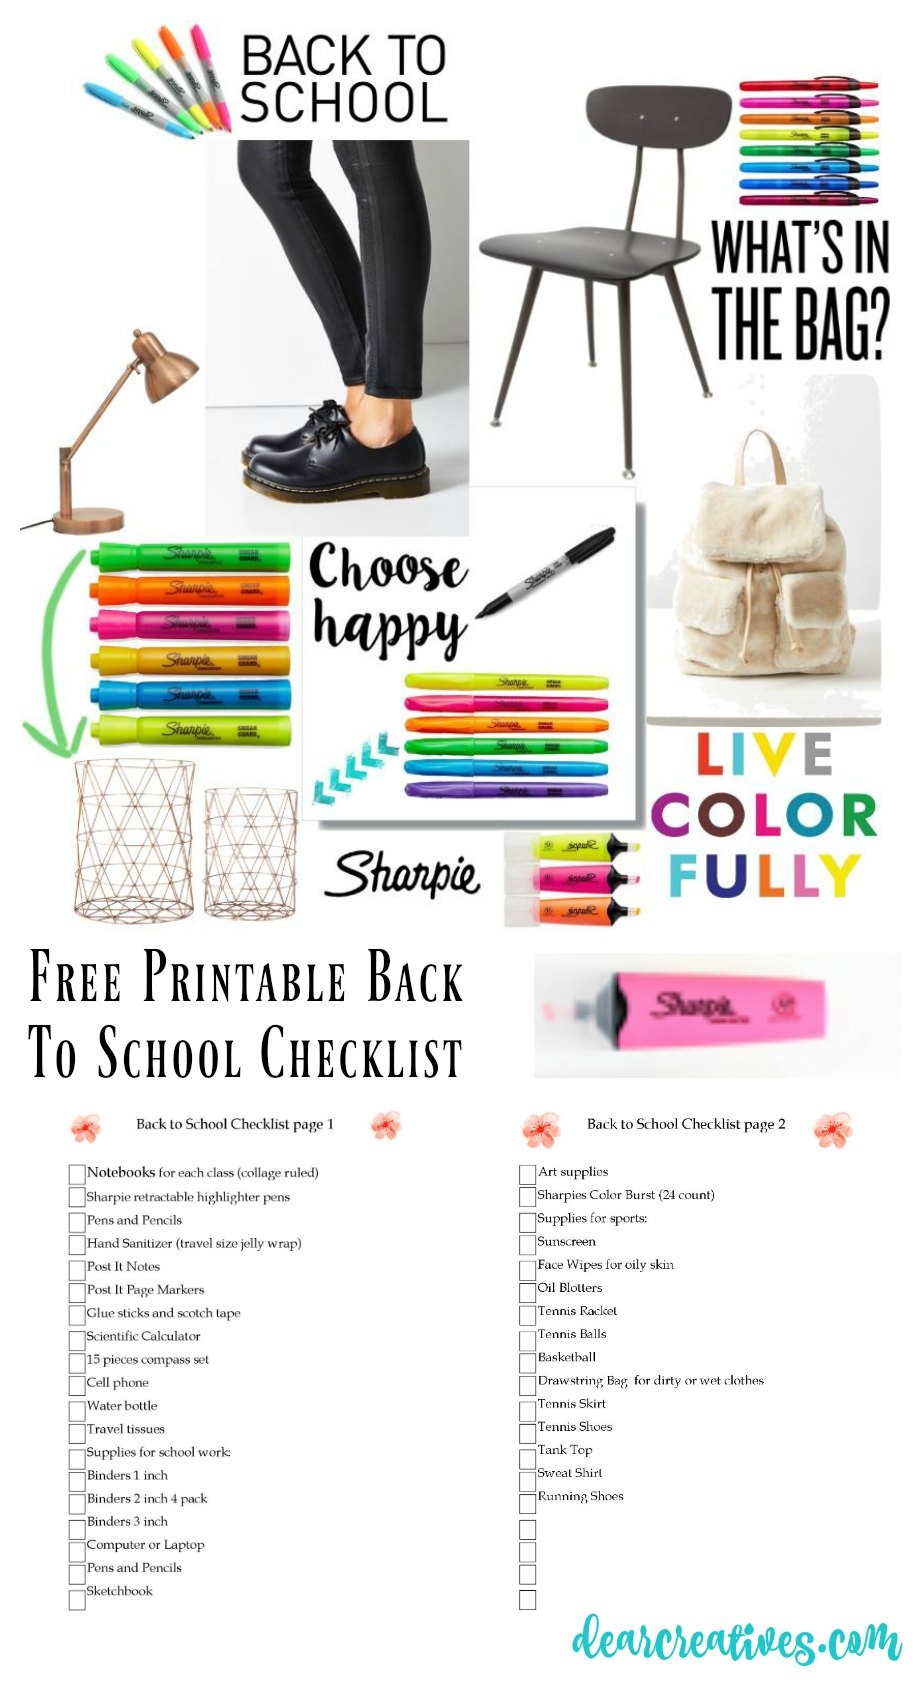 Back To School Checklist for Teen Girls Plus two free printables to make shopping and restocking easy to help you stay organized during the school year. DearCreatives.com